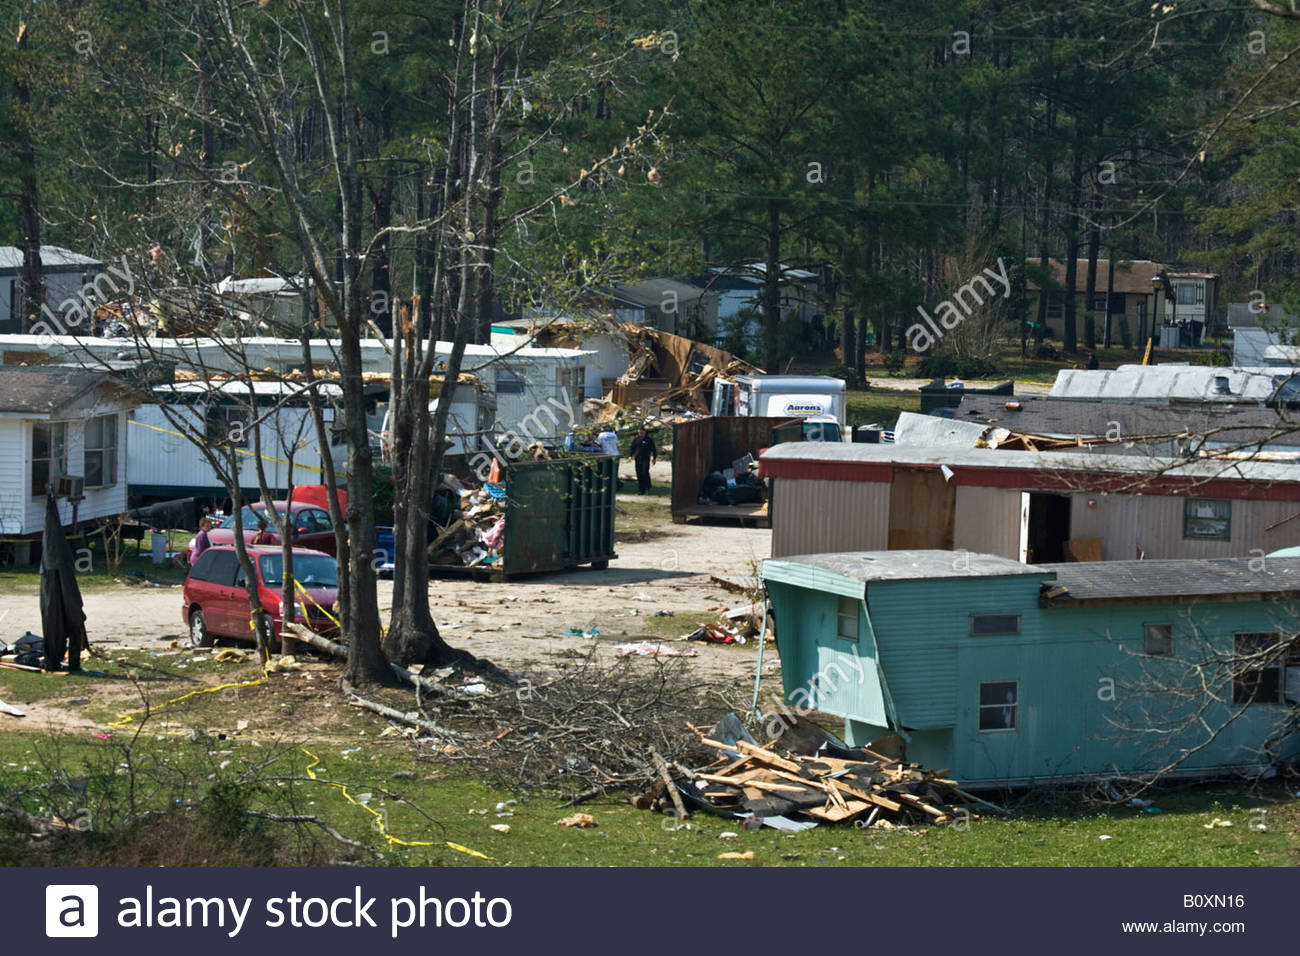 The Aftermath Of A Tornado At A Mobile Home Park Near